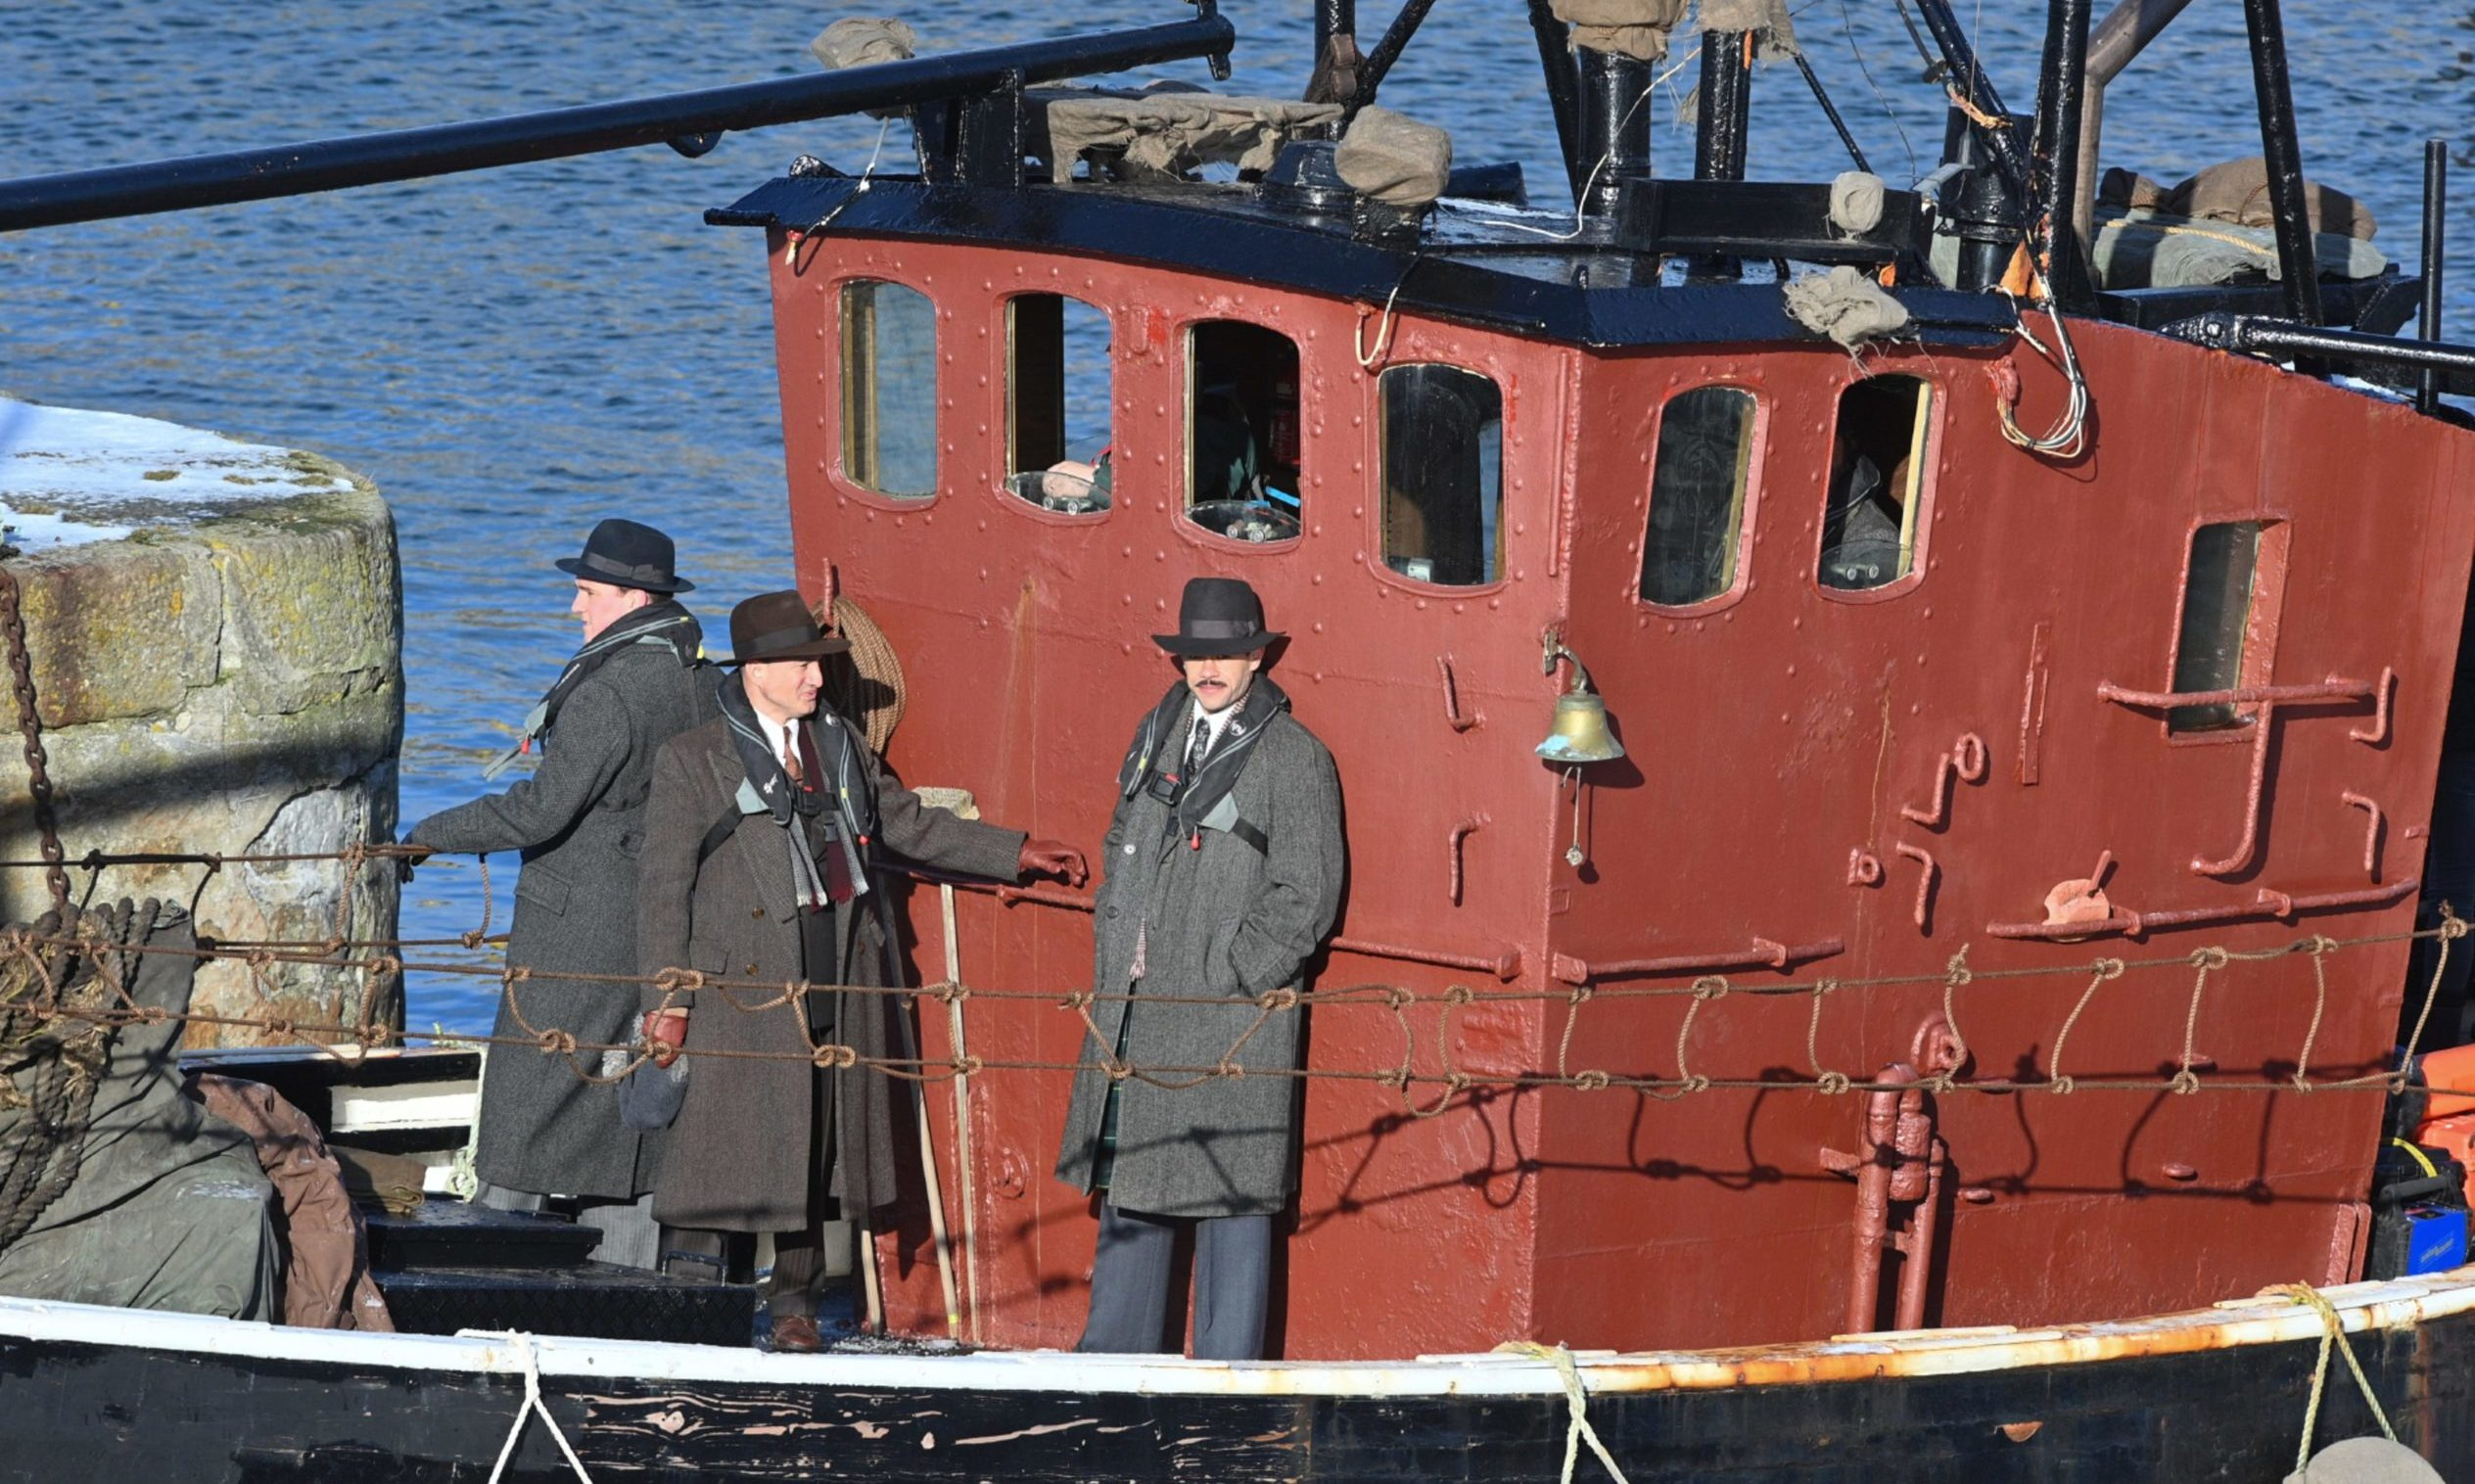 Some actors were seen on board a small red boat during Peaky Blinders filming.